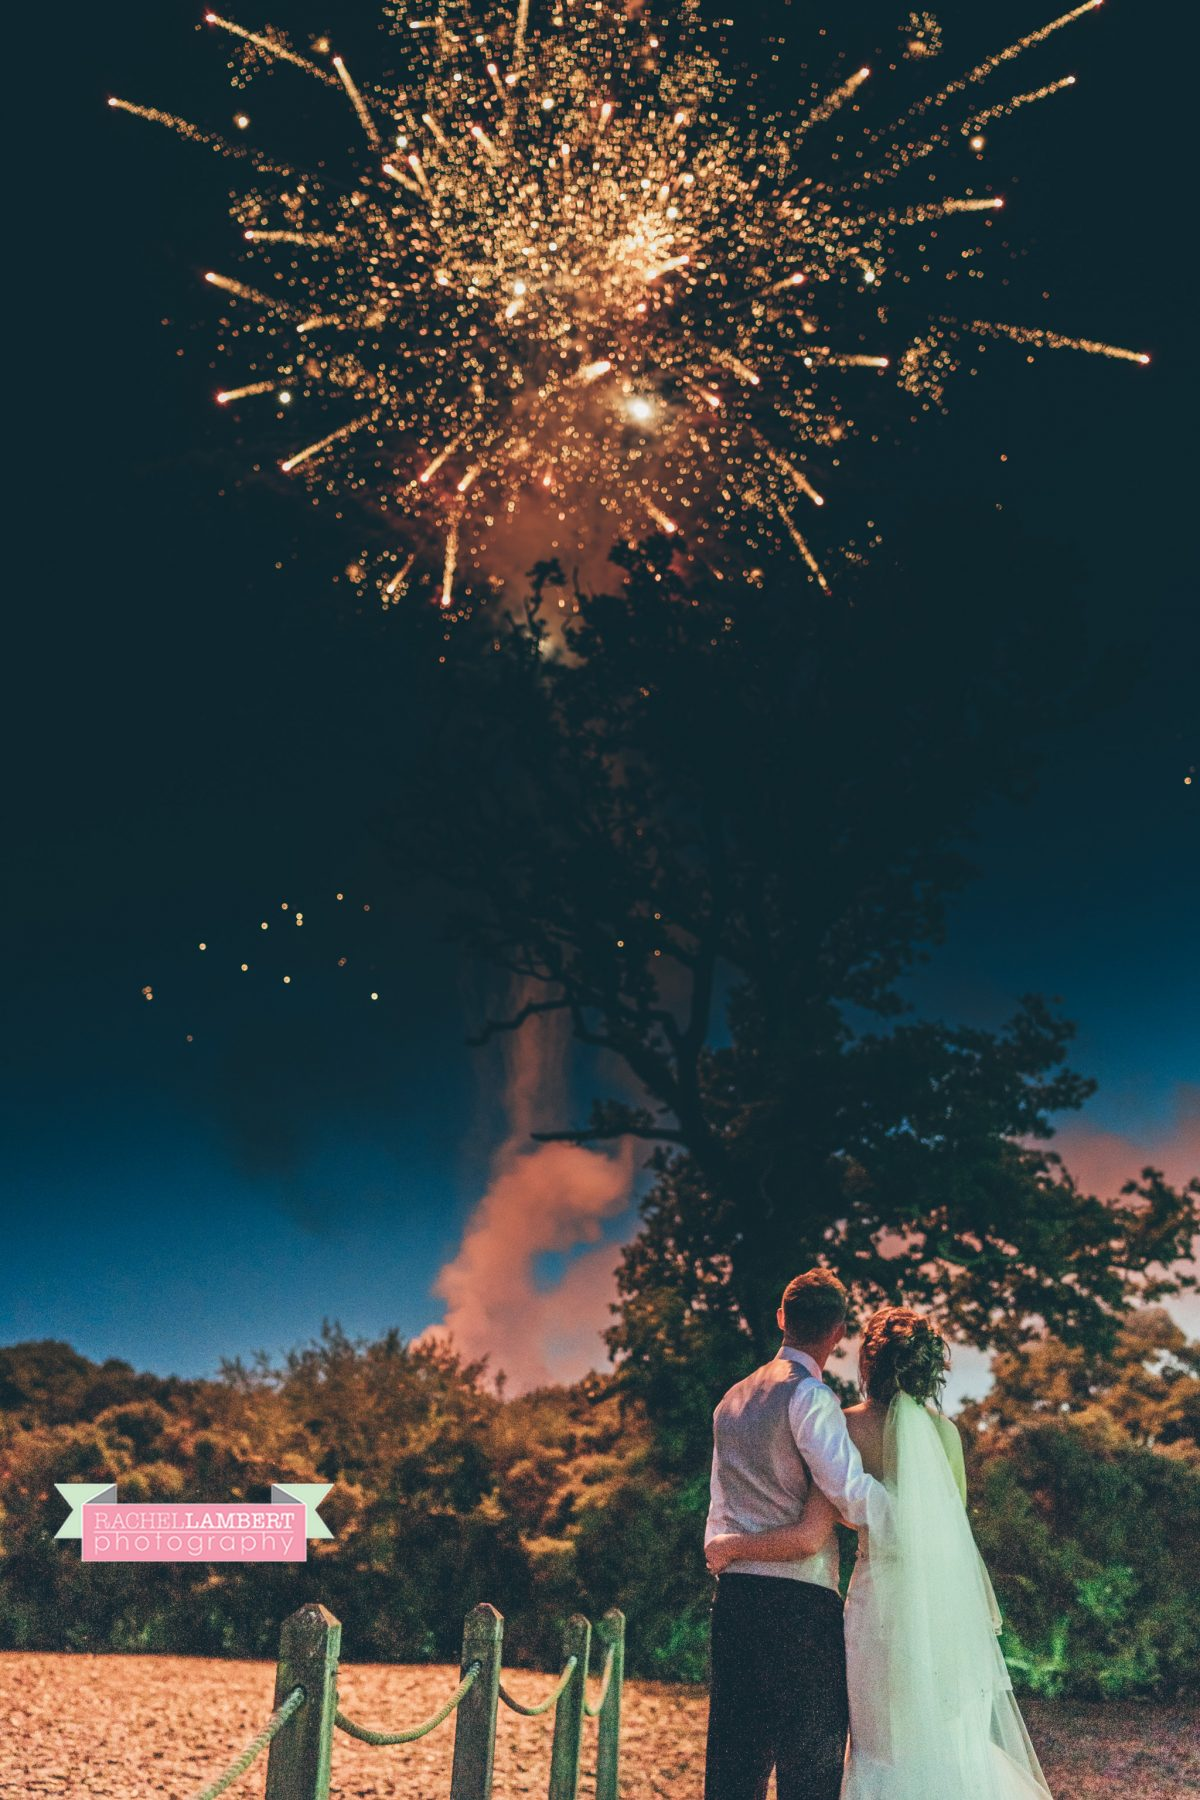 olwalls wedding photographer rachel lambert photography bride and groom fireworks